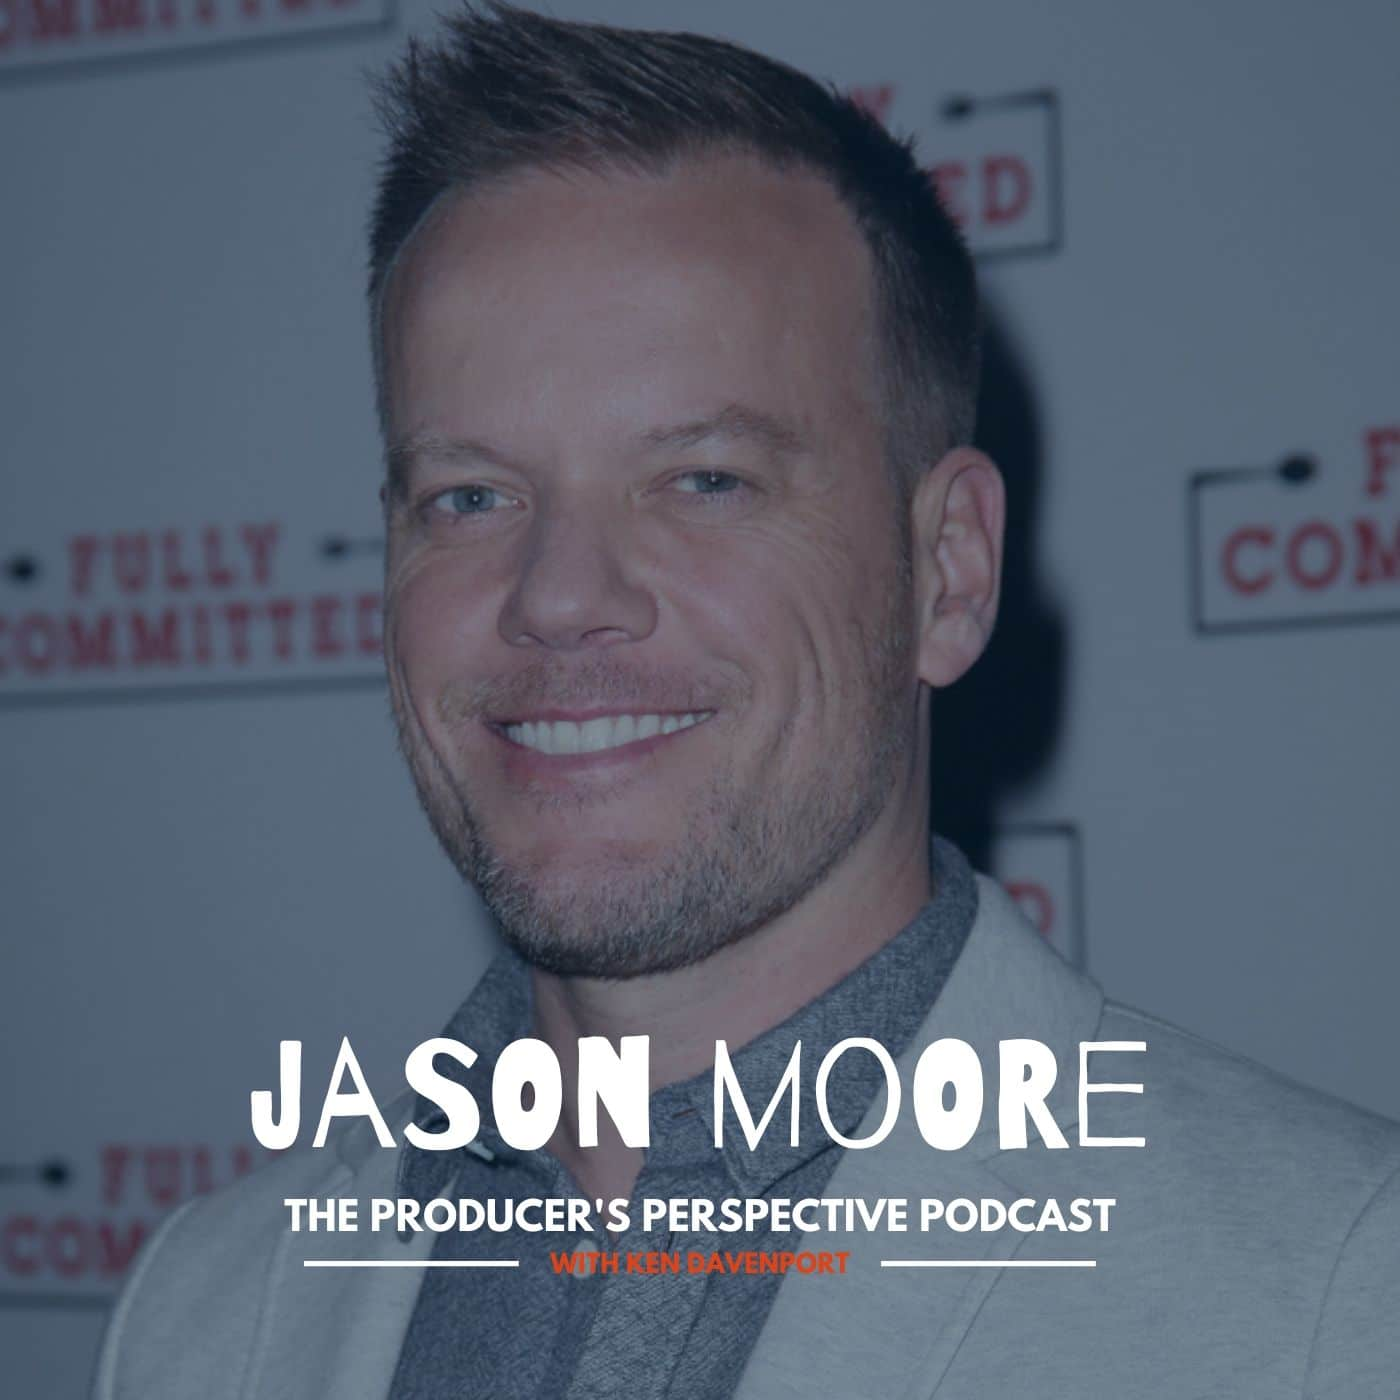 Ken Davenport's The Producer's Perspective Podcast Episode 184 - Jason Moore